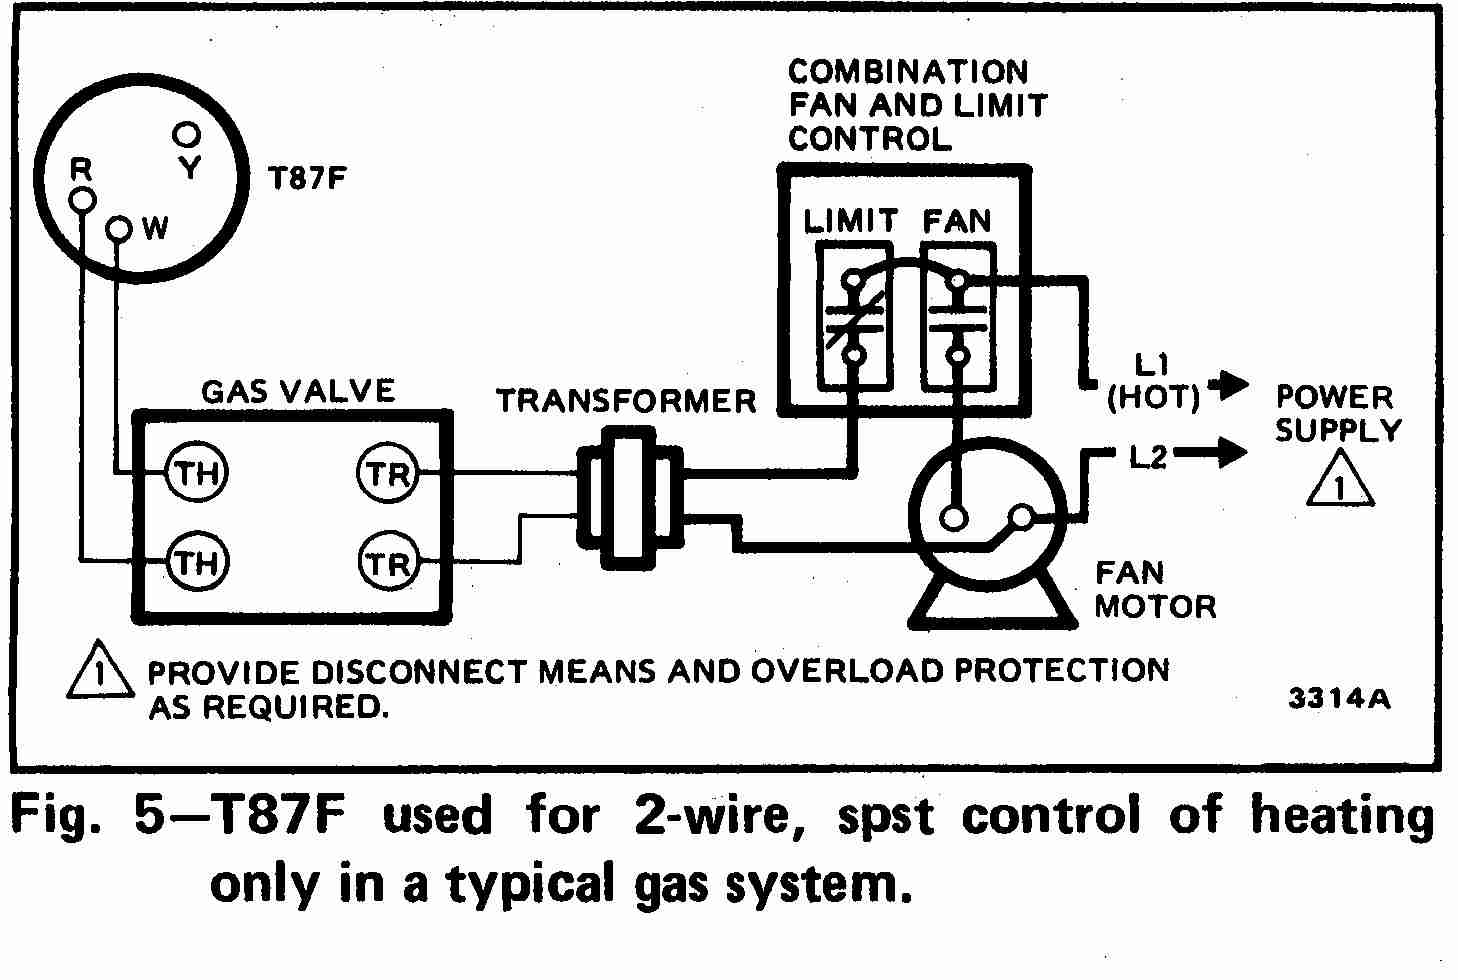 10 Kw Williams Wall Furnace Wiring Diagram | Wiring Diagram - Furnace Wiring Diagram